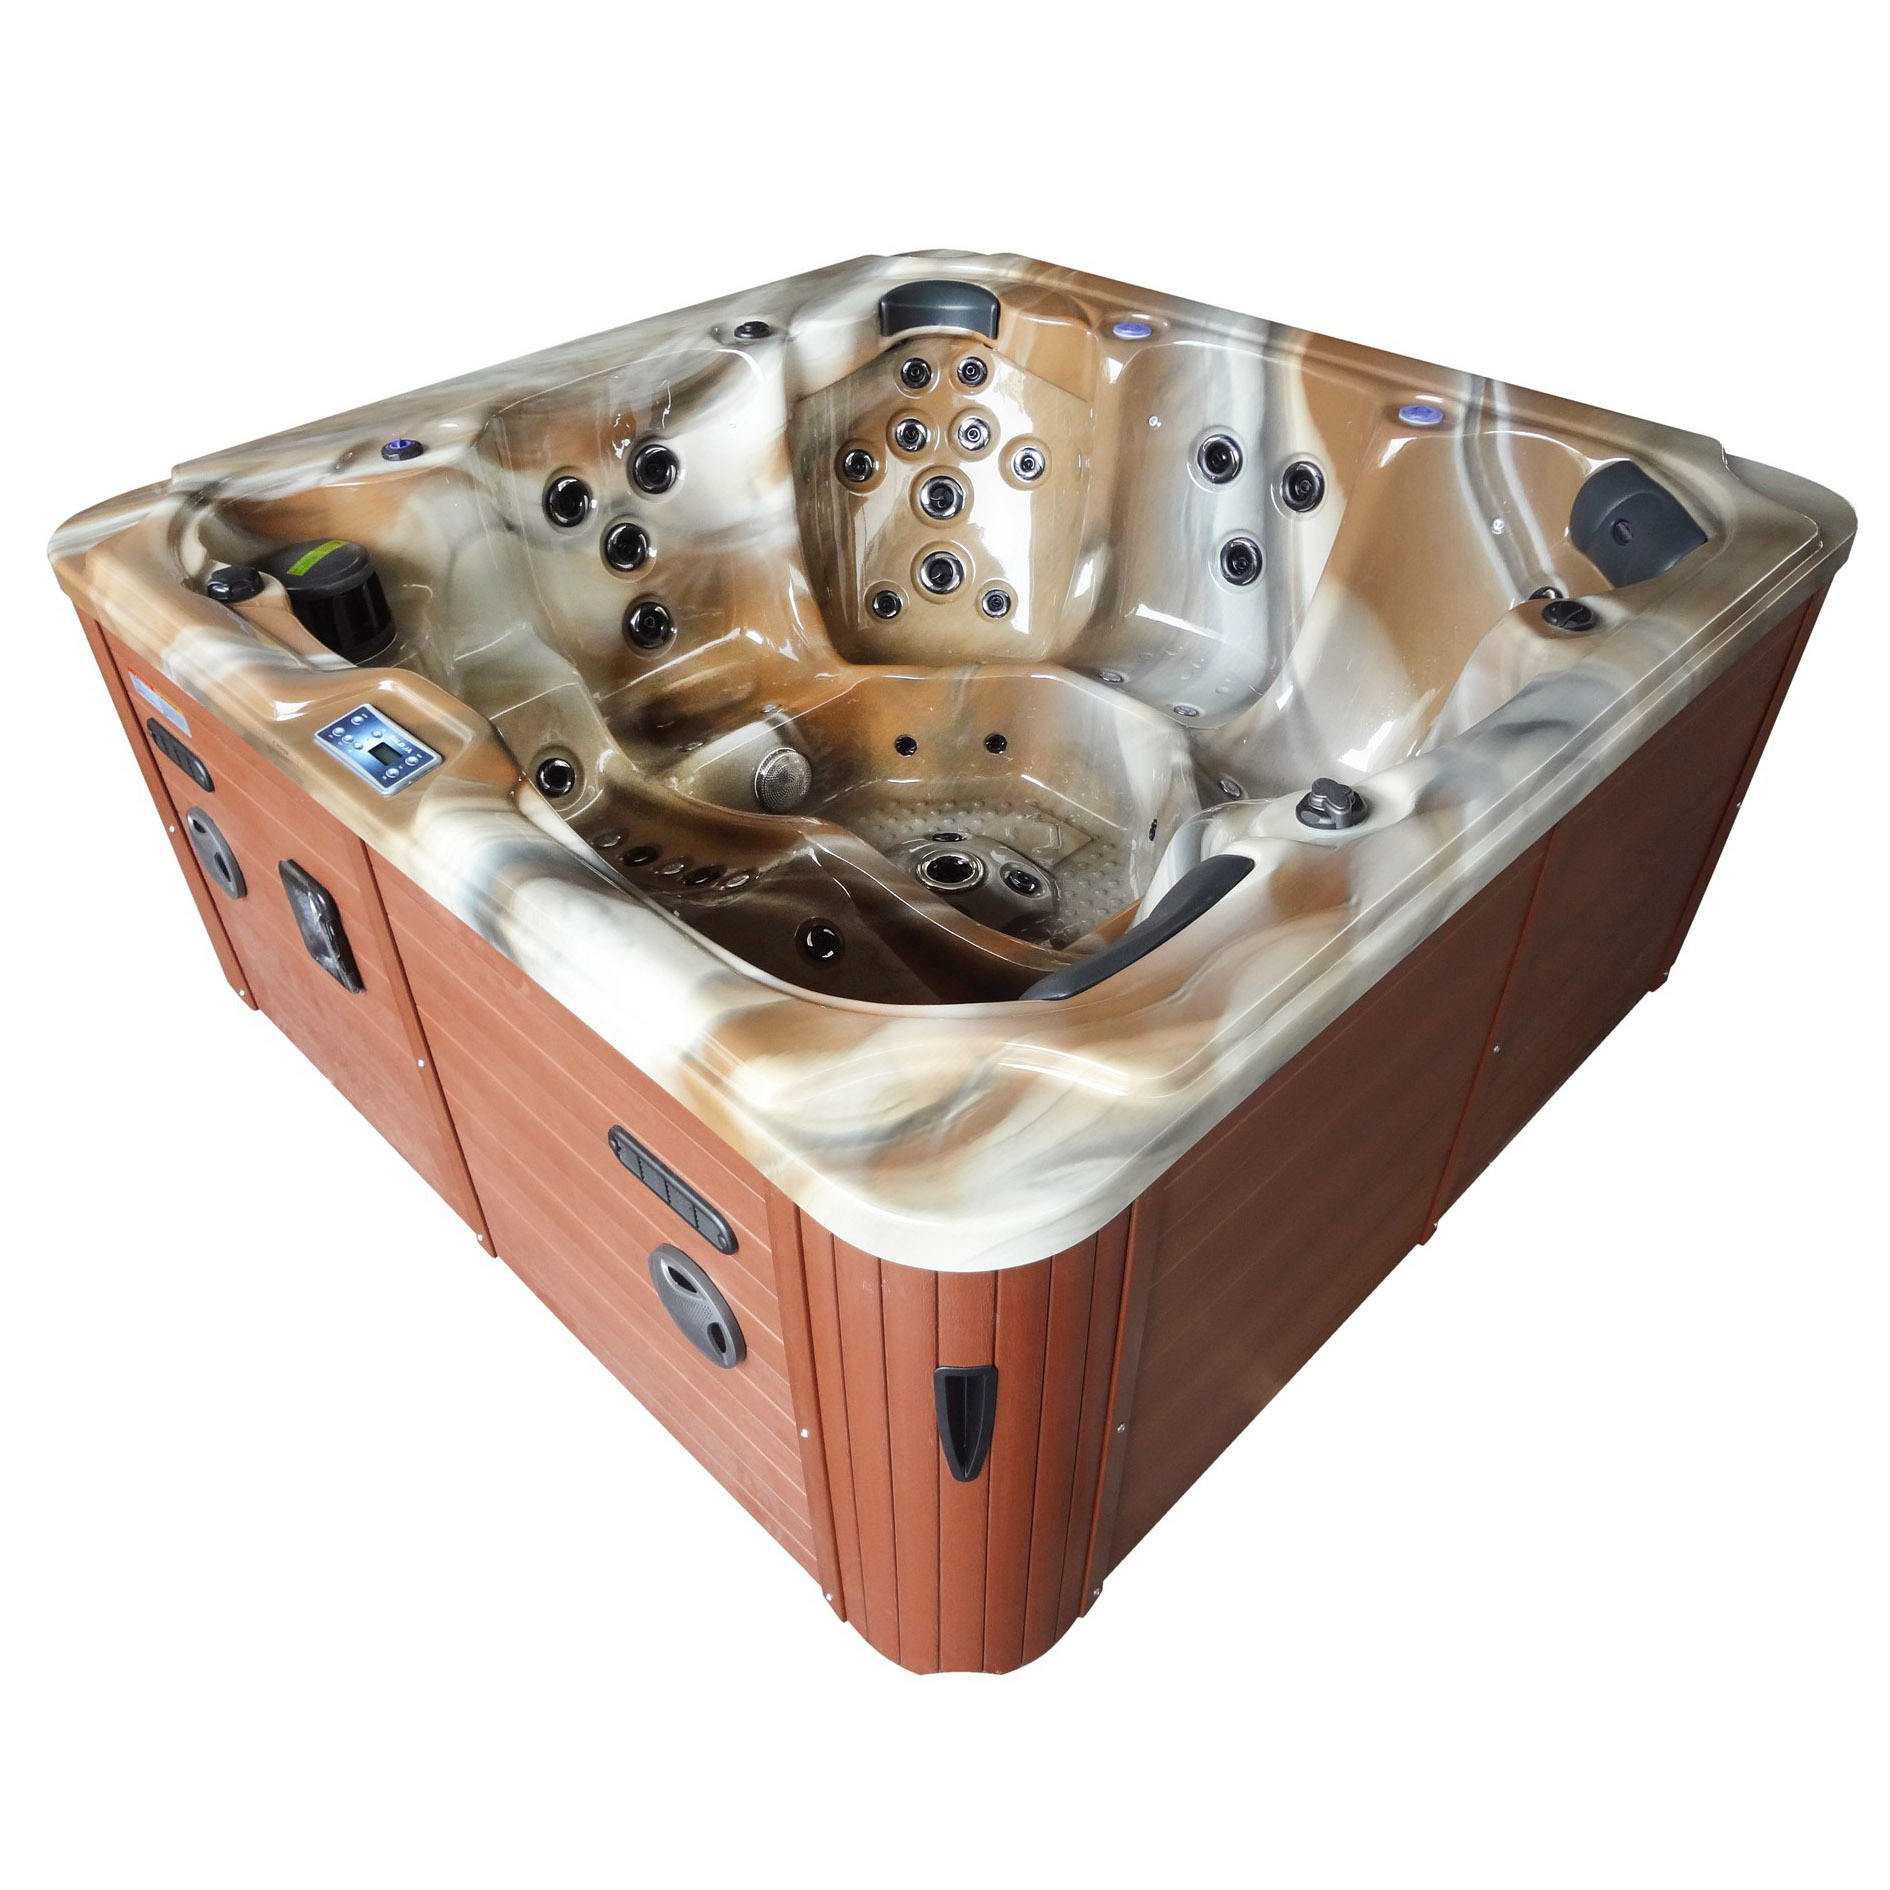 Aquaspring spa Hot sale 6 persons portable outdoor air jets hot tub offer massage